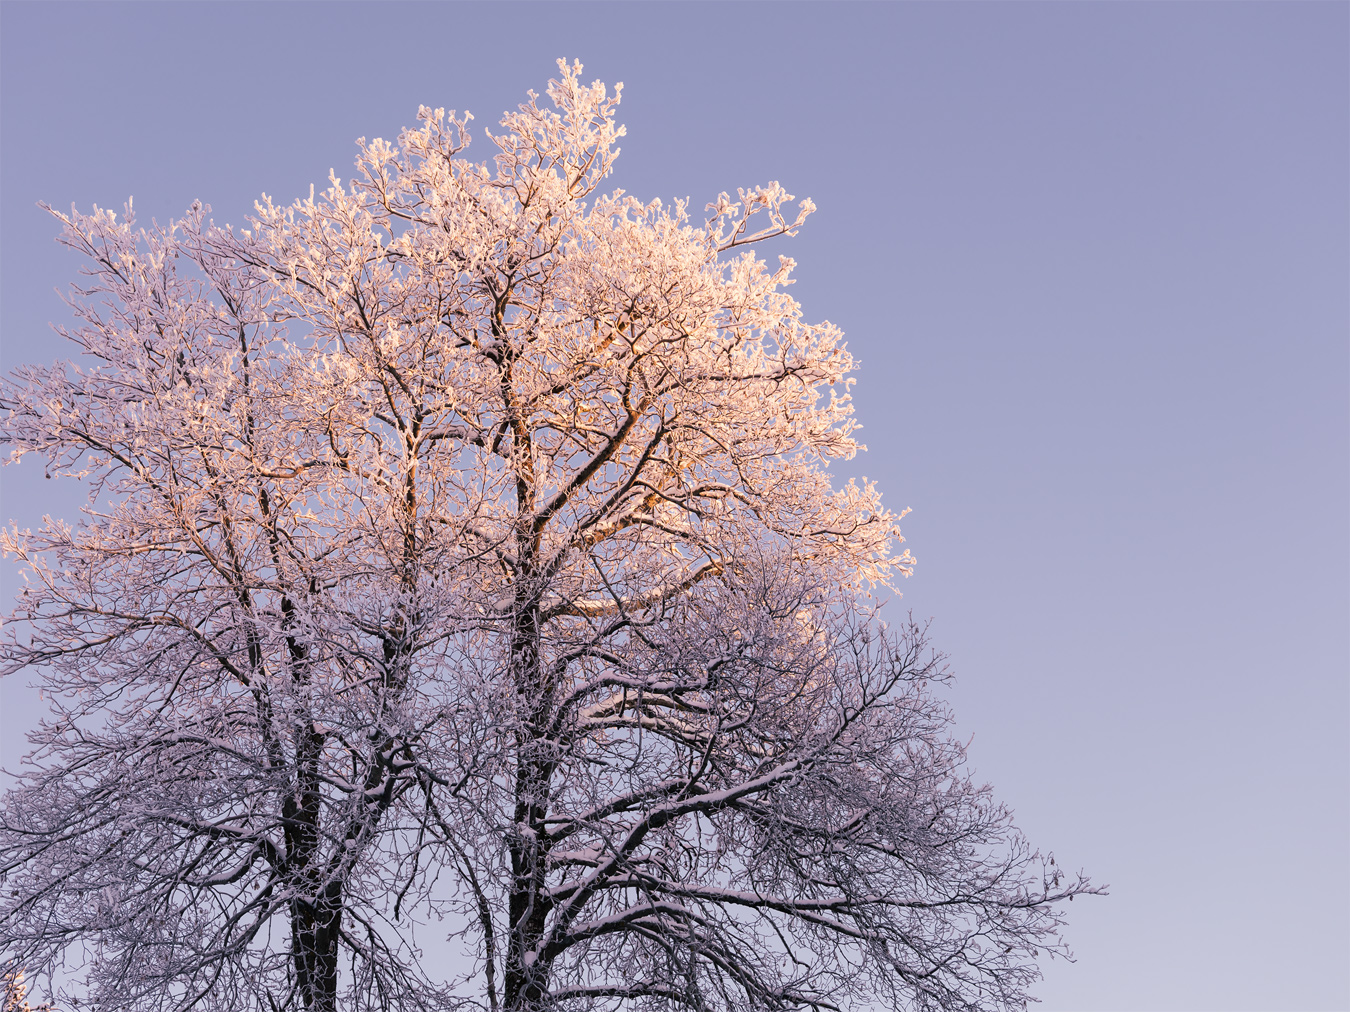 Frosty Tree, Ore Mountains, Germany by Nils Leonhardt